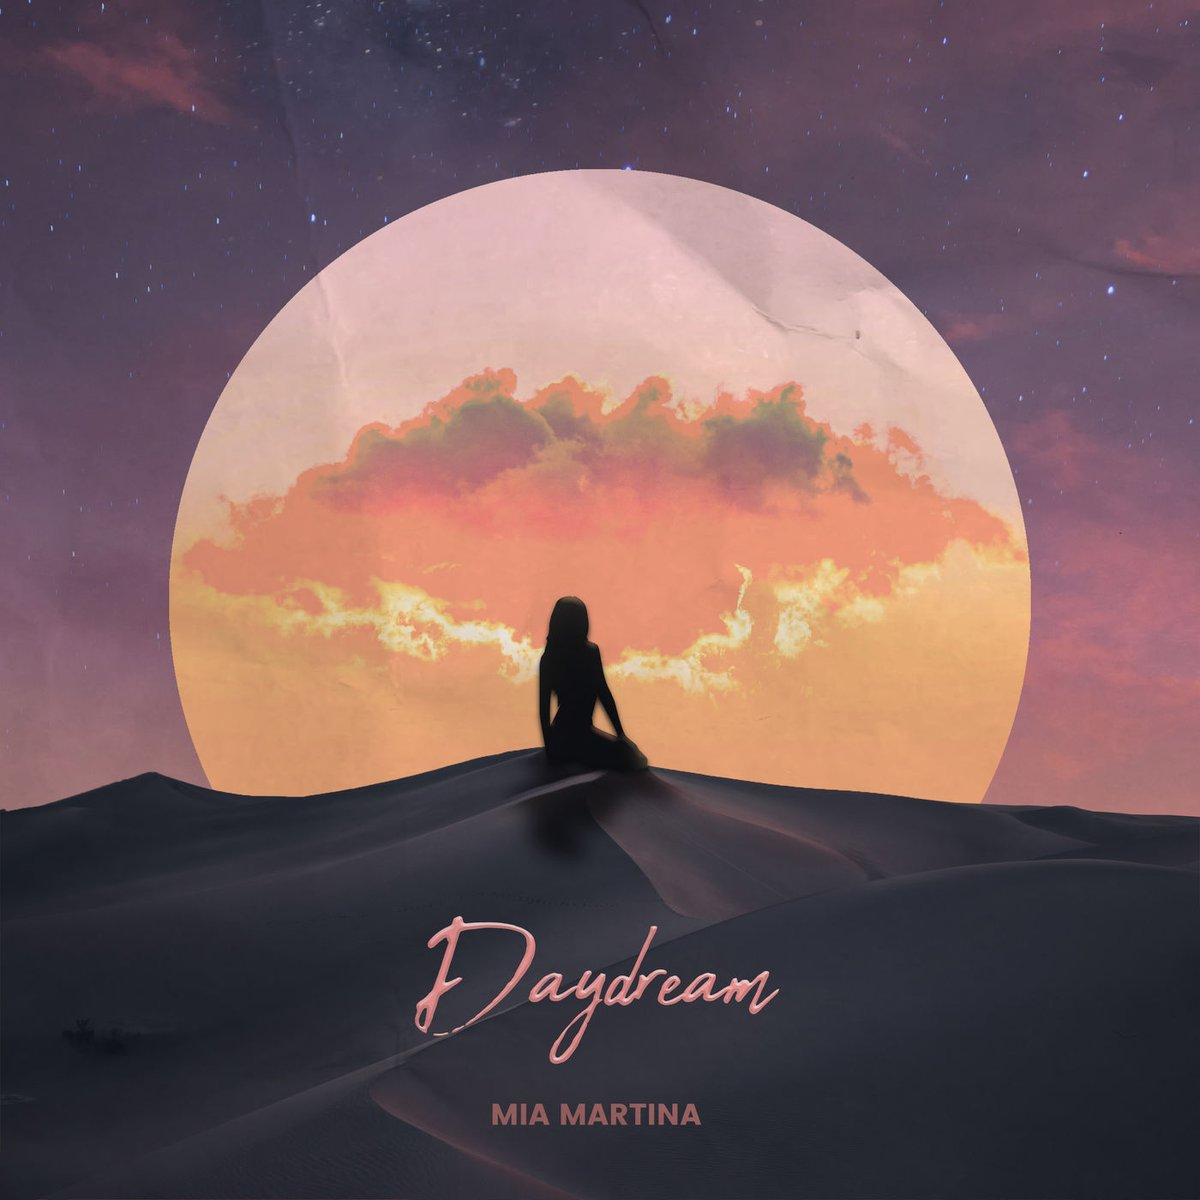 I FELT IN LOVE WITH #Daydream The last work of La Diosa @MiaMartina A SUPREME EP <3 <3 <3 #MeAndTheMusic intro is AWESOME!!! #WorstInMe is in my head now!!!!  IN #Deezer https://www.deezer.com/album/118169932?utm_source=deezer&utm_content=album-118169932&utm_term=3208276004_1574486291&utm_medium=web …pic.twitter.com/GJixpsOCKD